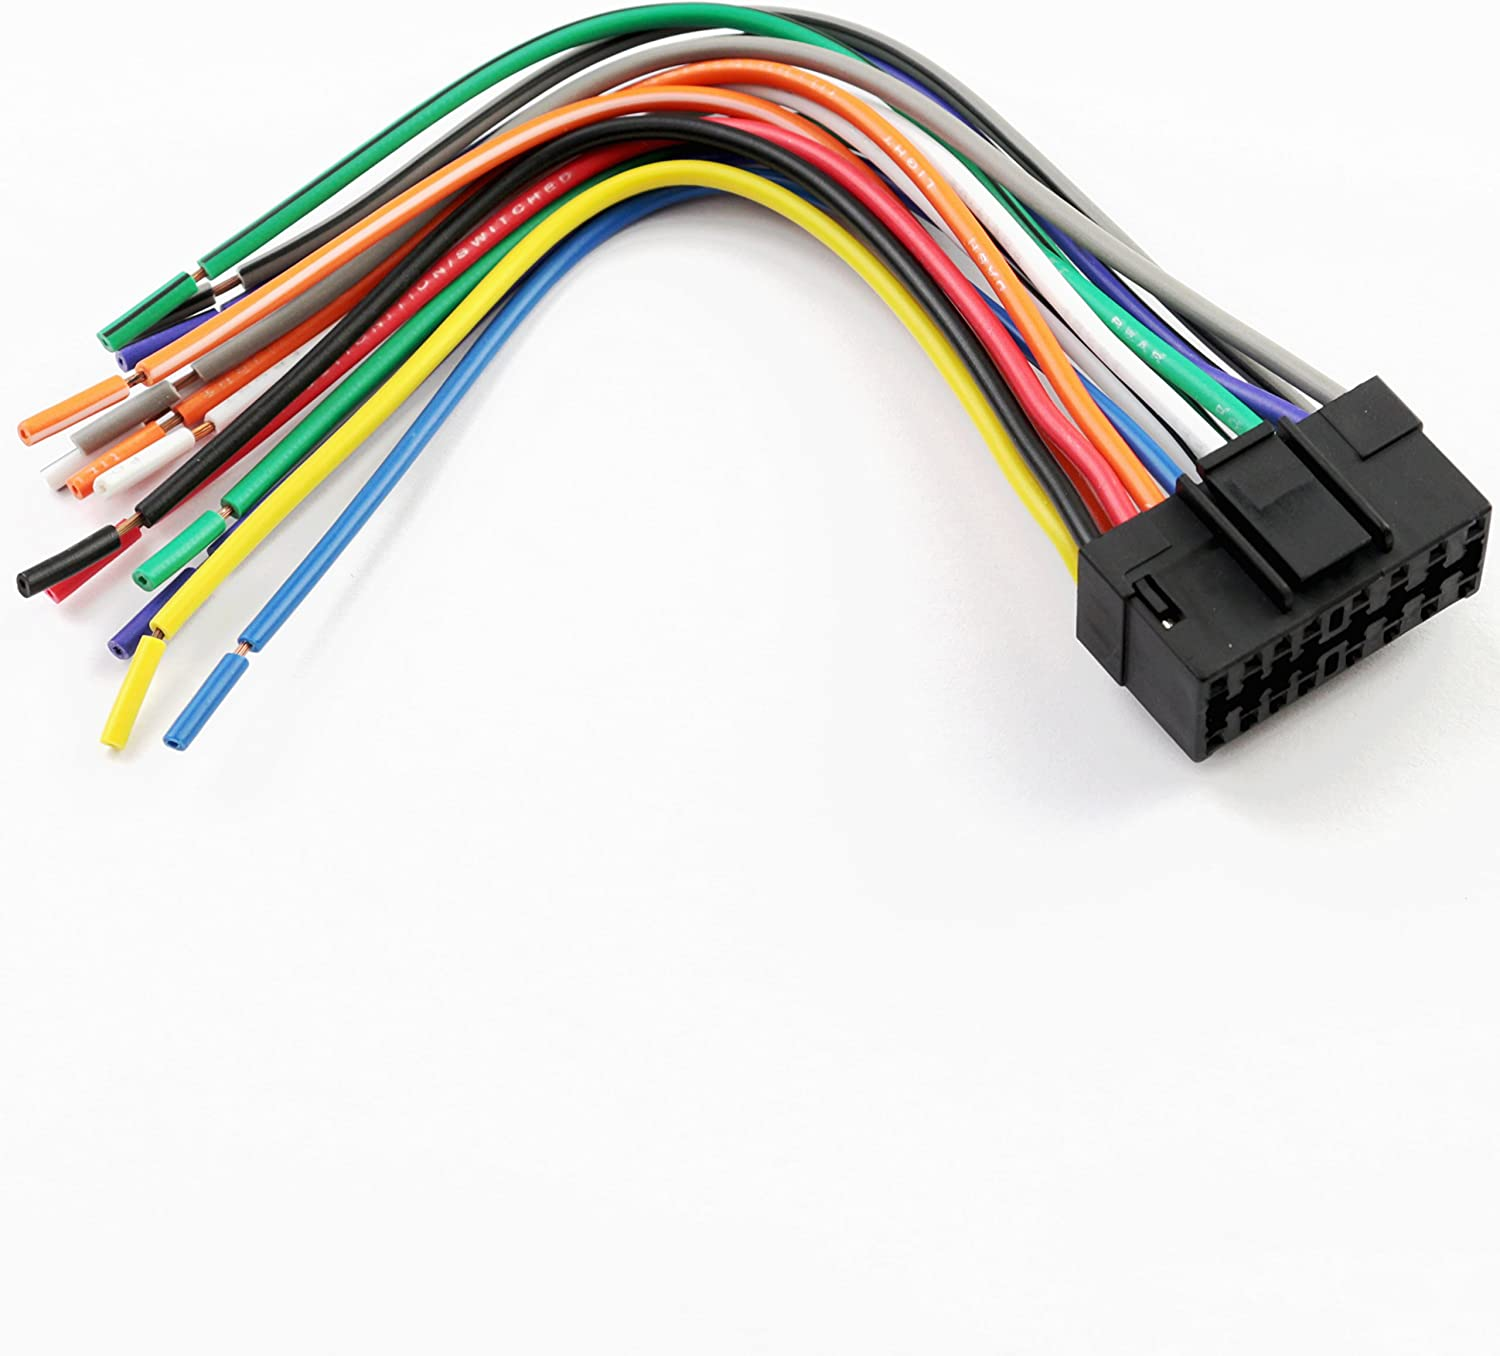 [DIAGRAM_34OR]  Amazon.com: XScorpion JVC16000 Universal 16-Pin Wiring Harness with  Aftermarket Stereo Plugs for Jvc | 16 Pin Wiring Harness |  | Amazon.com